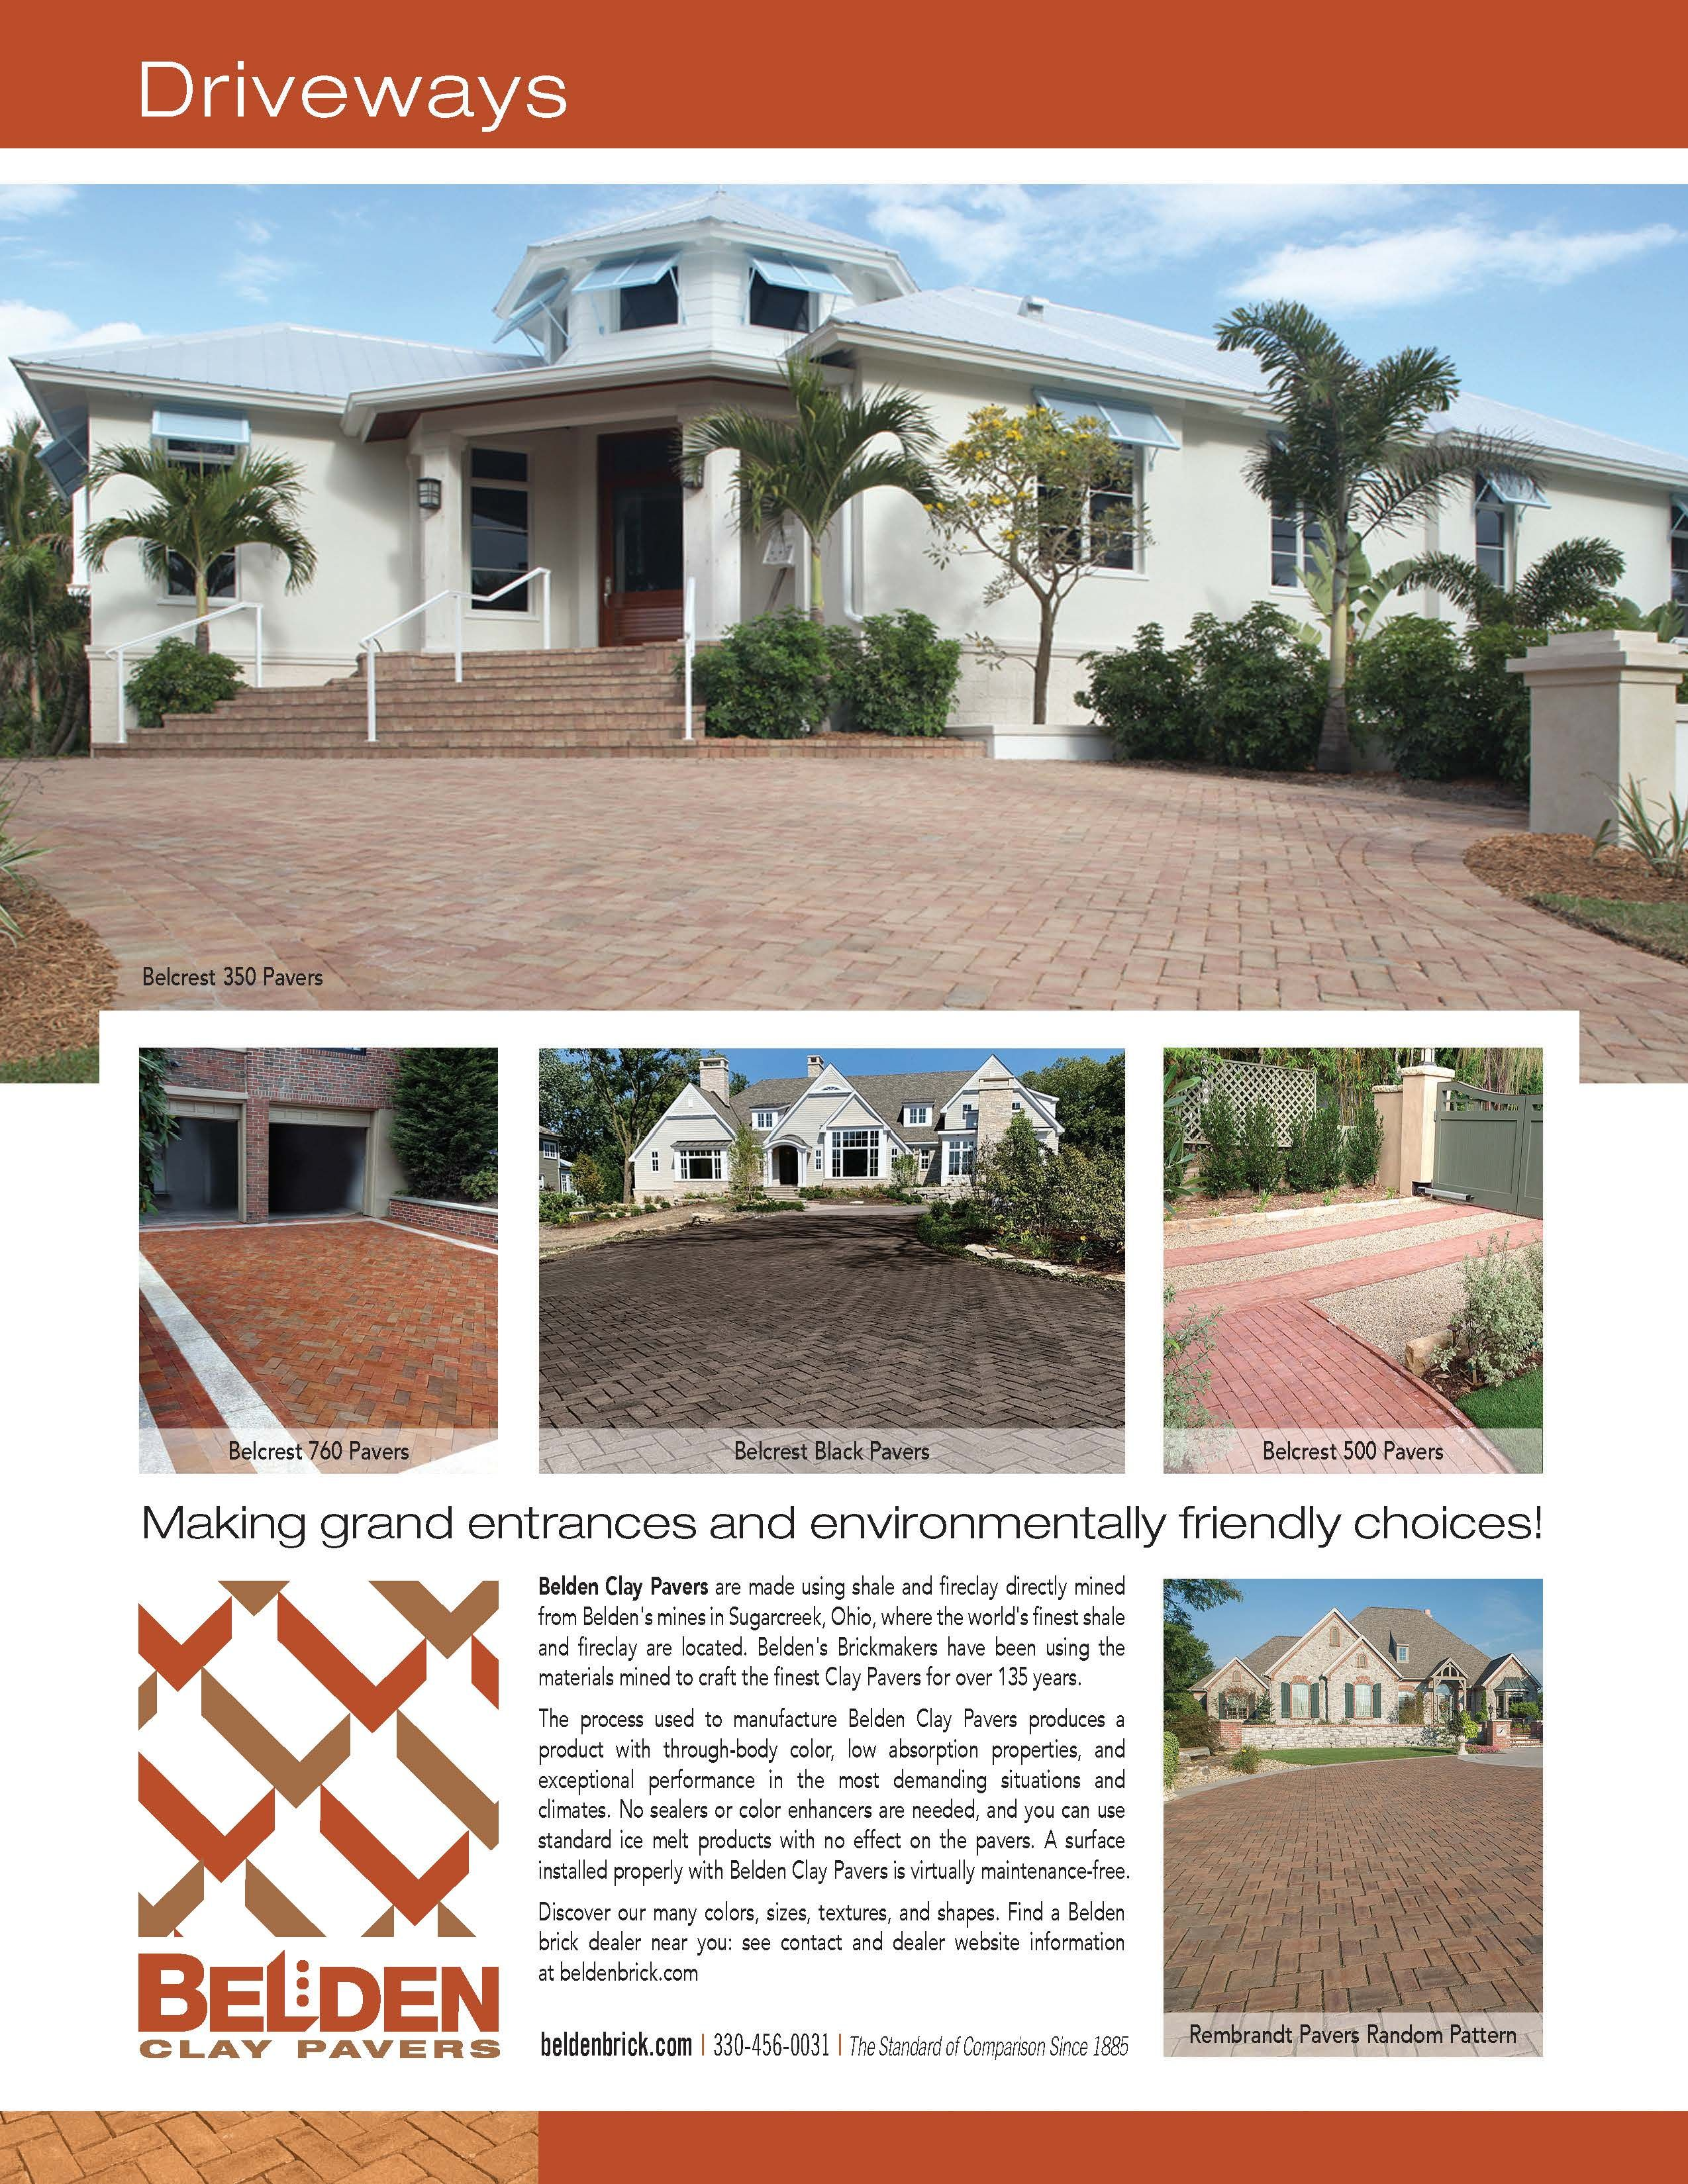 Clay Paver Driveways